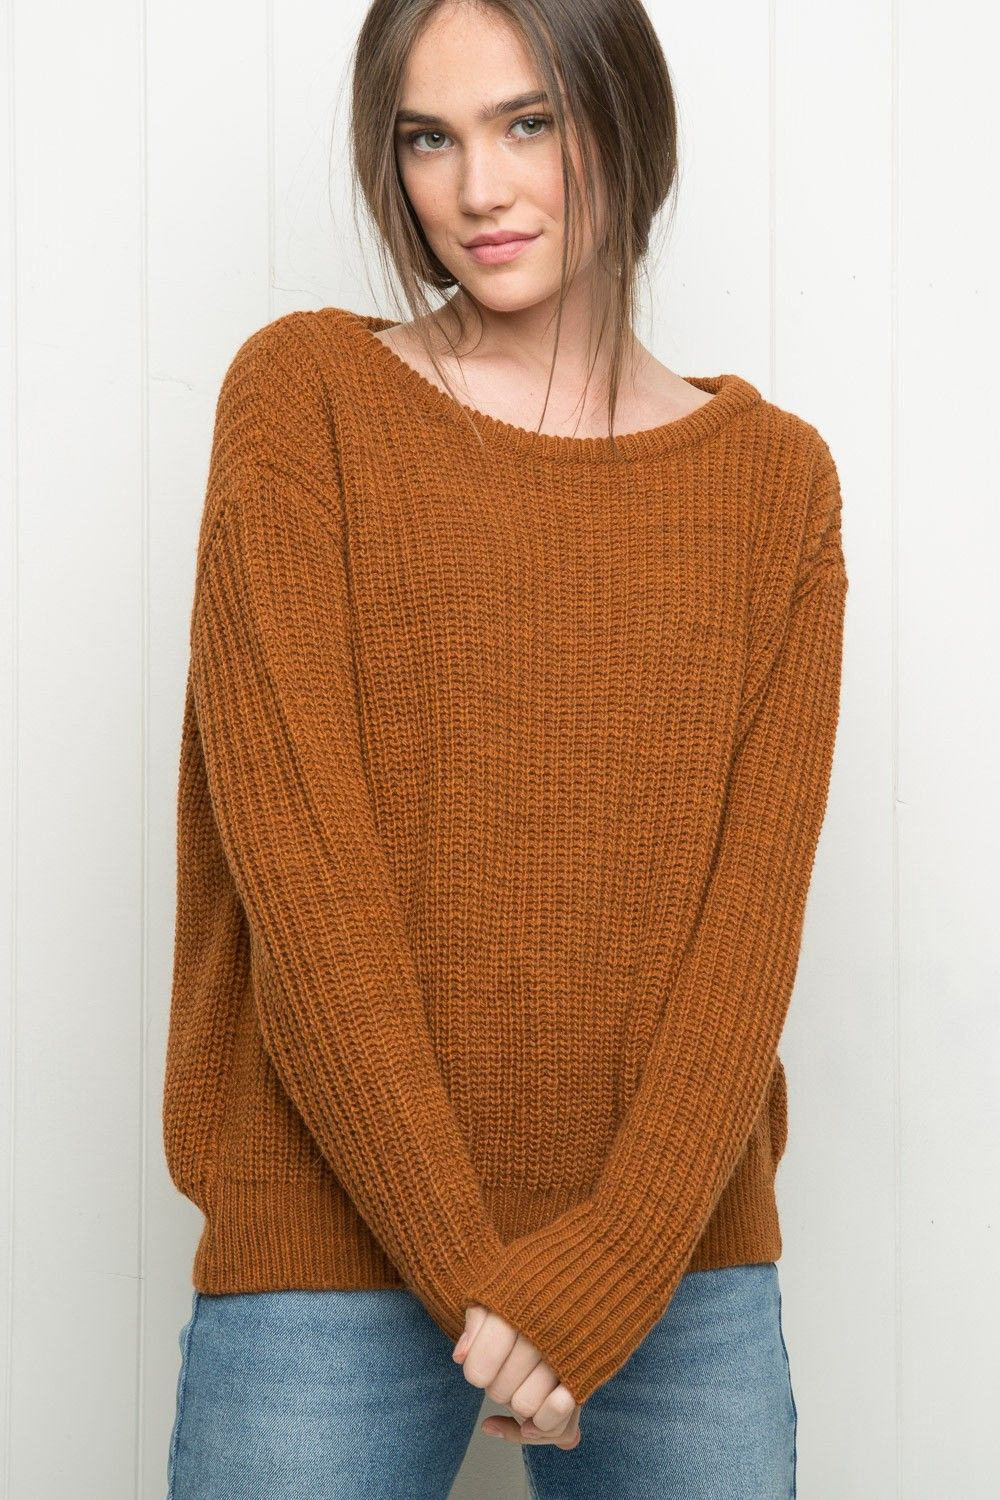 Brandy ♥ Melville | Leia Sweater - Just In | Clothes ...